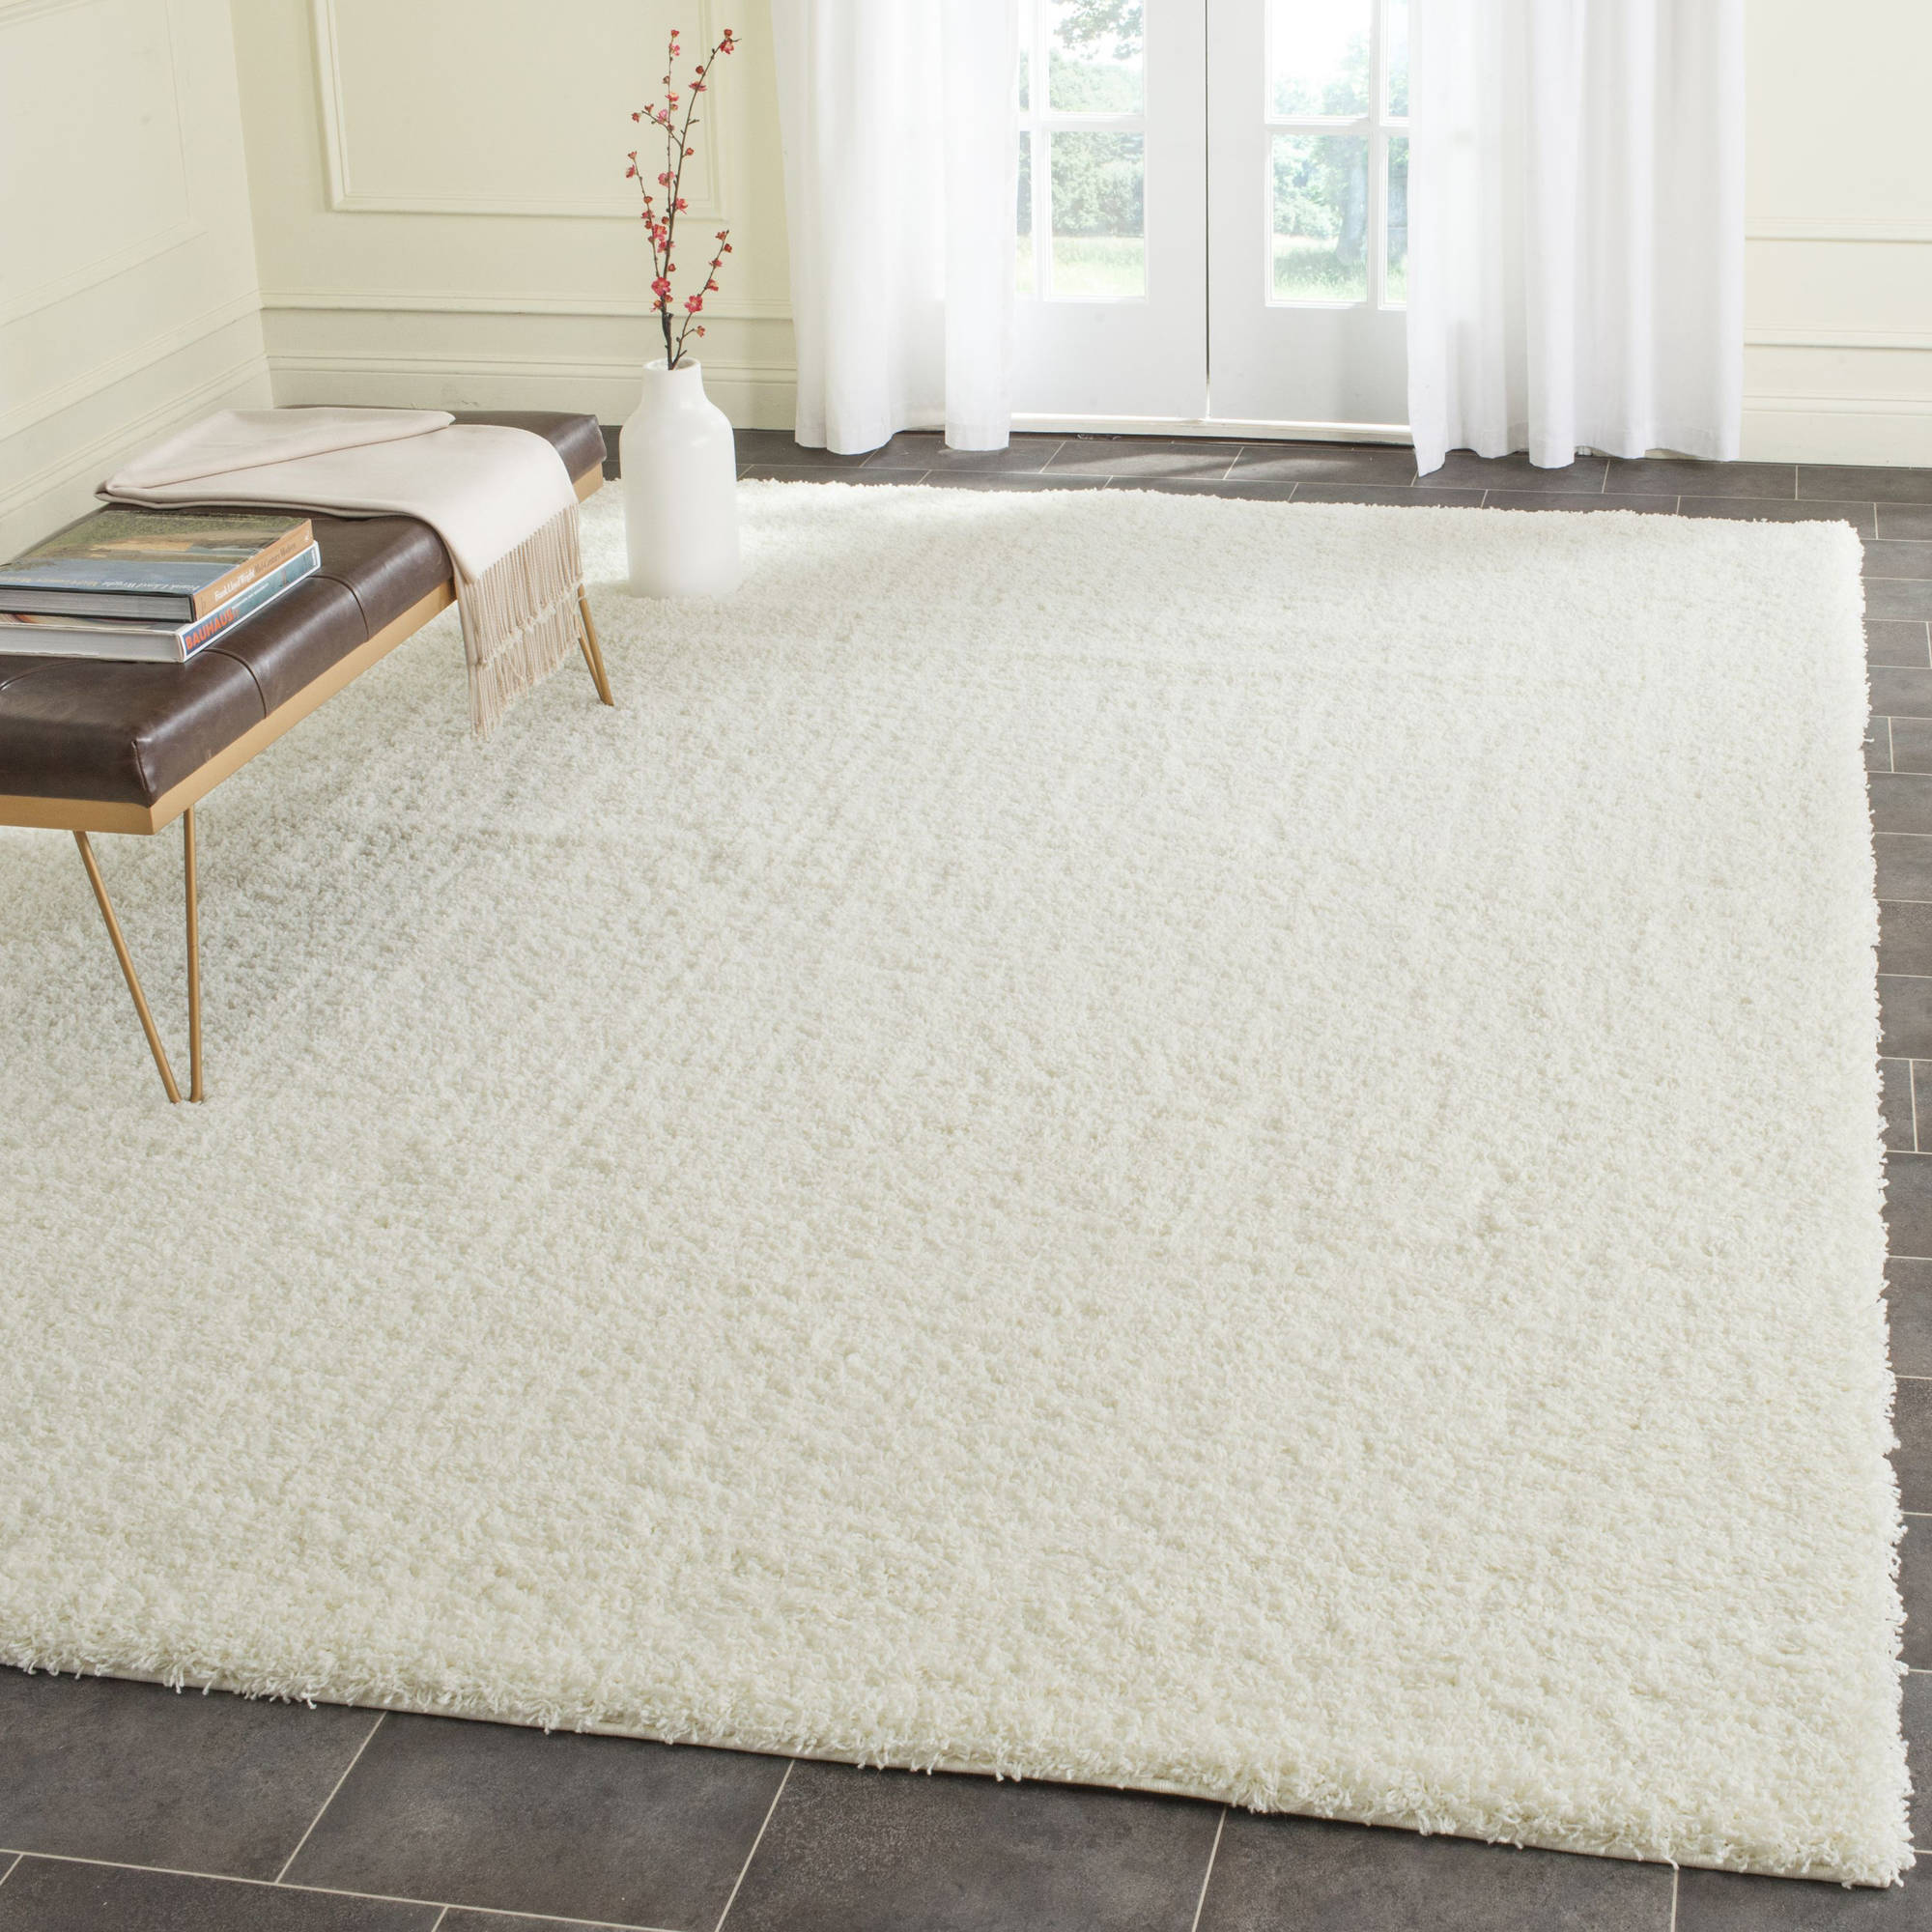 Safavieh Laguna Neven Power Loomed Shag Area Rug